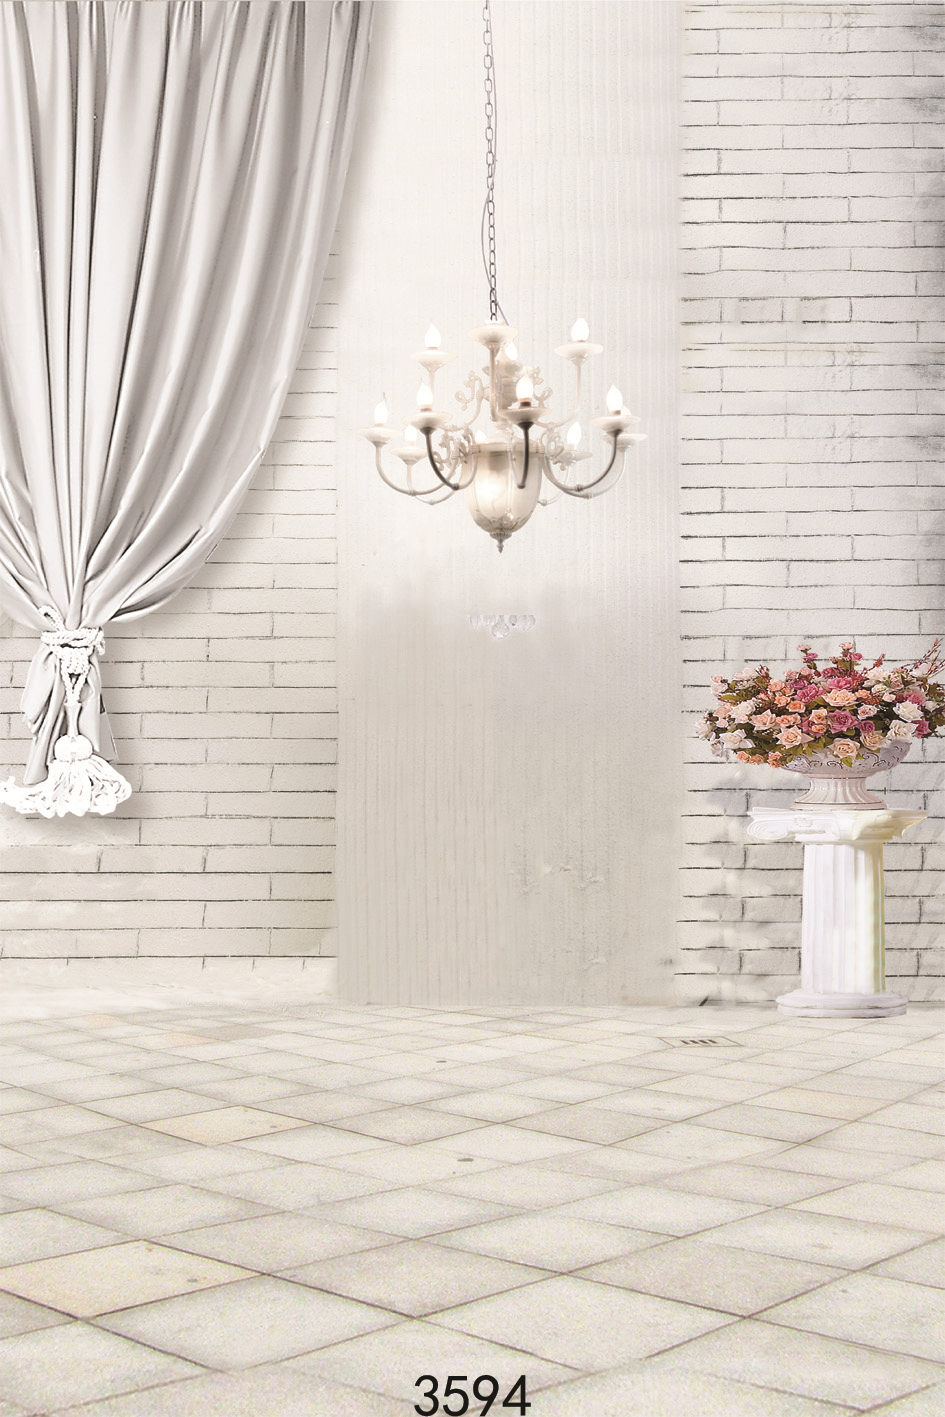 Indoor White Room Studio Photography Backdrops For Photo Photographic Backgrounds Children Wedding Shooting In Background From Consumer